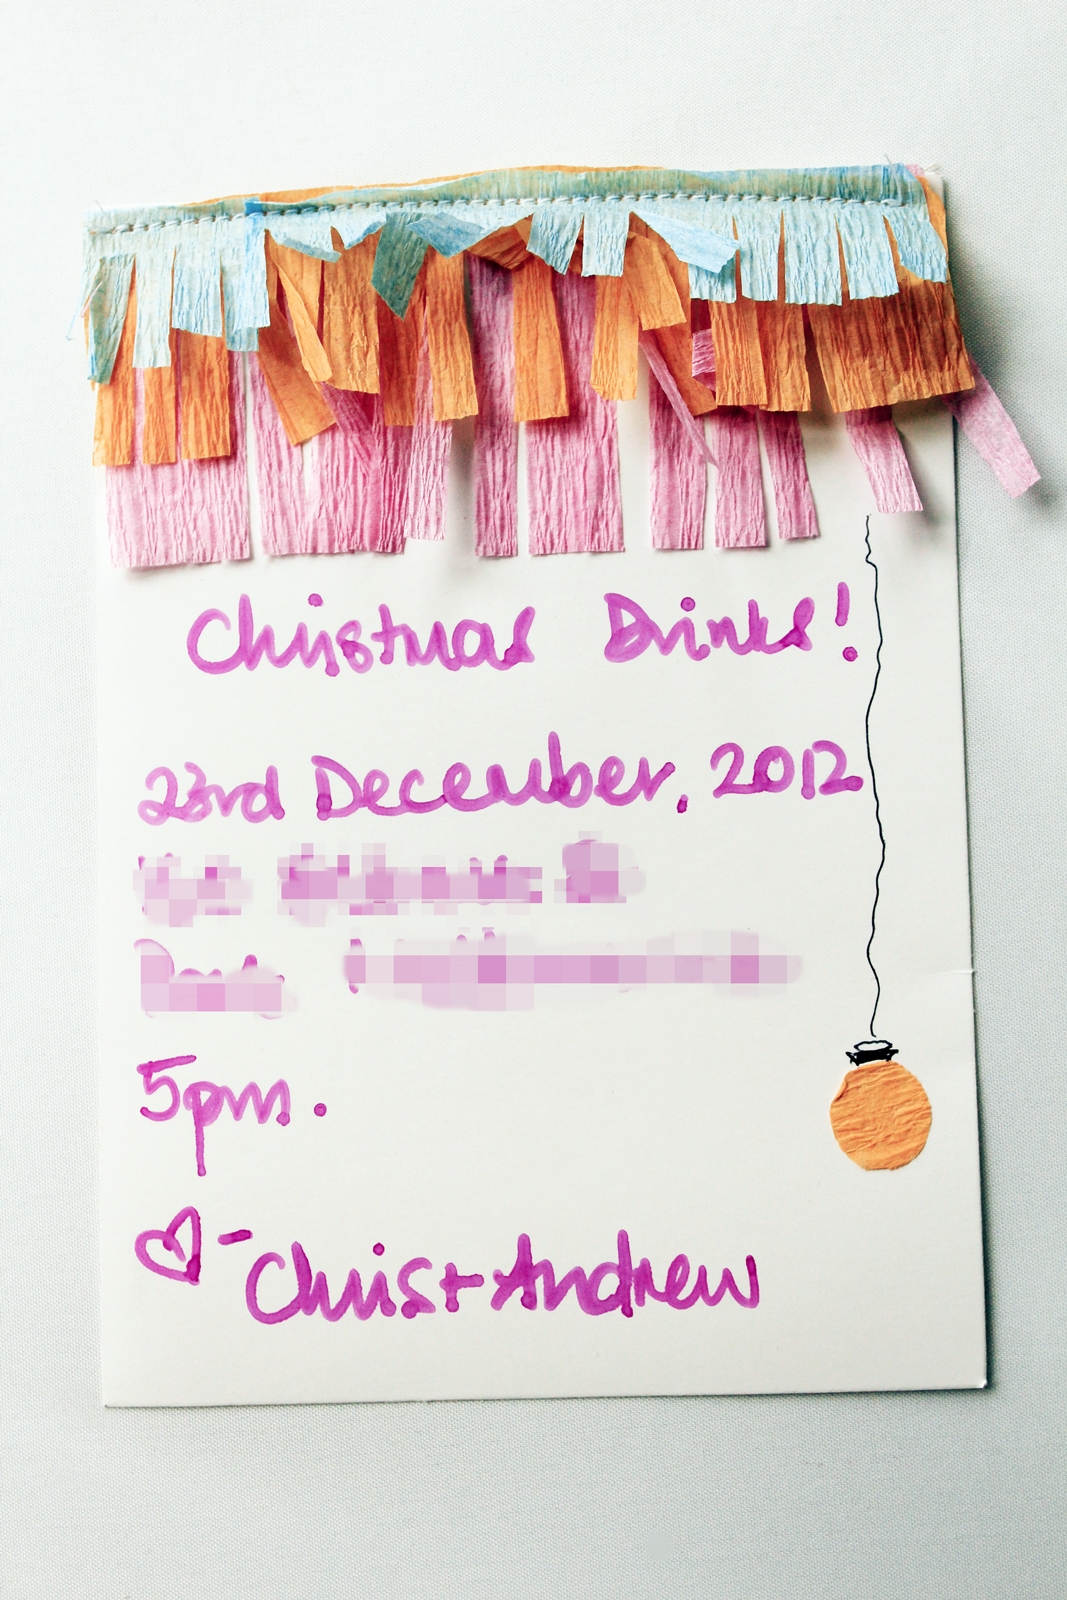 Christmas drinks invitation